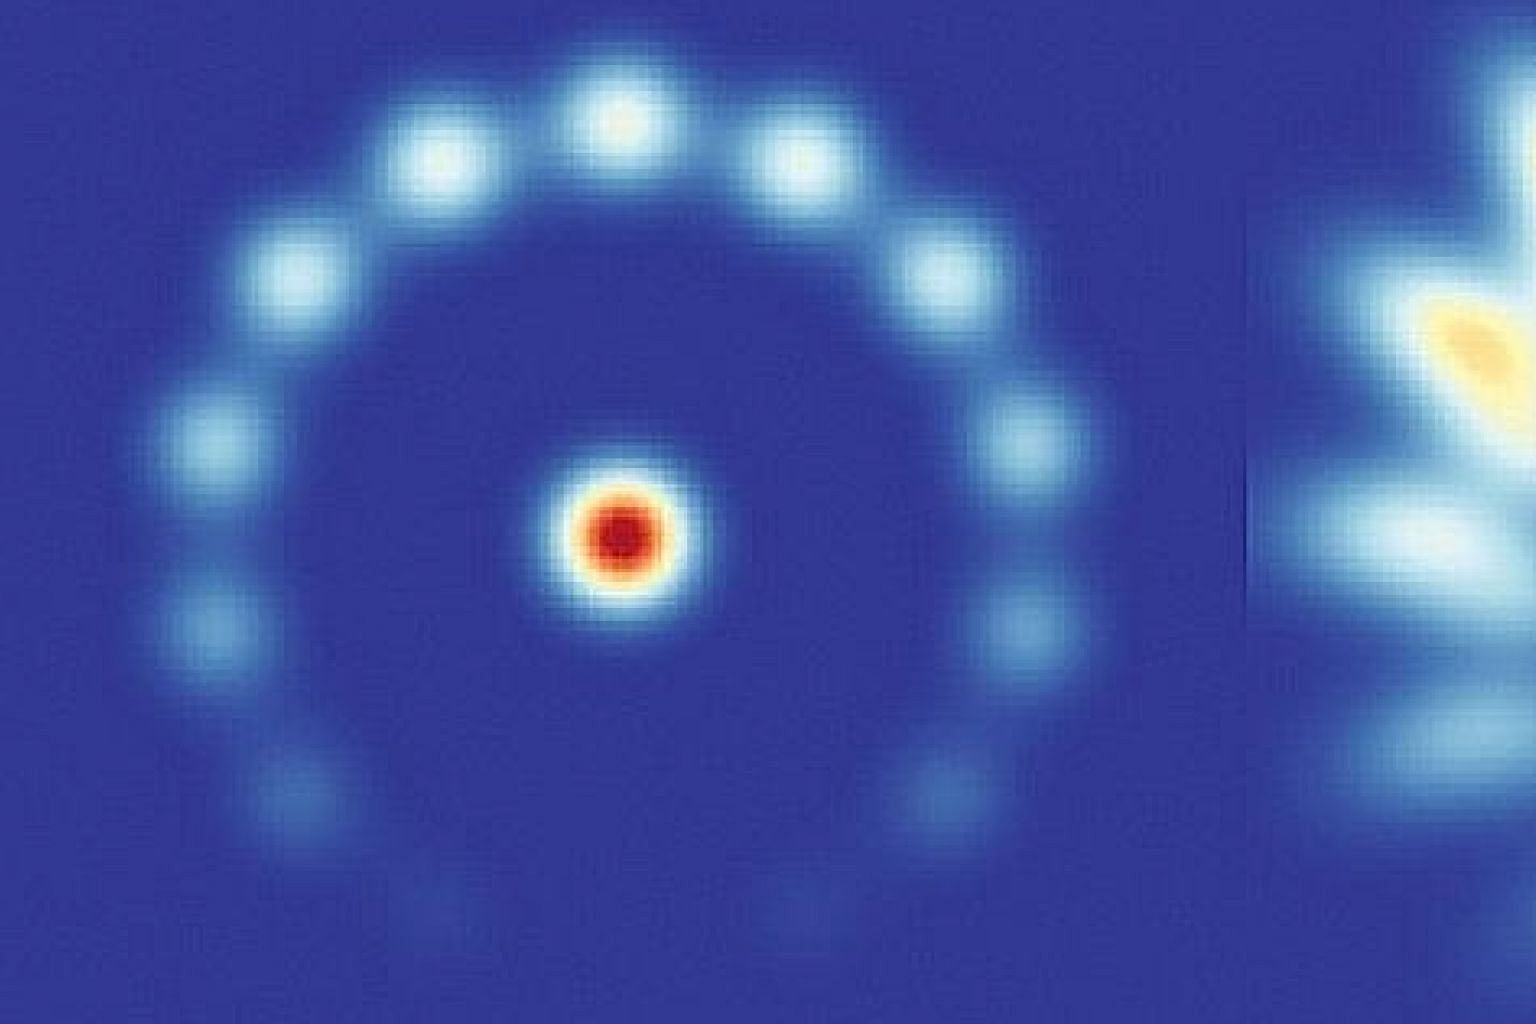 """These """"flowering"""" patterns show a computer simulation of a cold atom system in action. As thousands of atoms are cooled to a temperature near absolute zero, they are shaped into a ring. The atoms are concentrated into a central pool and a corrugated"""